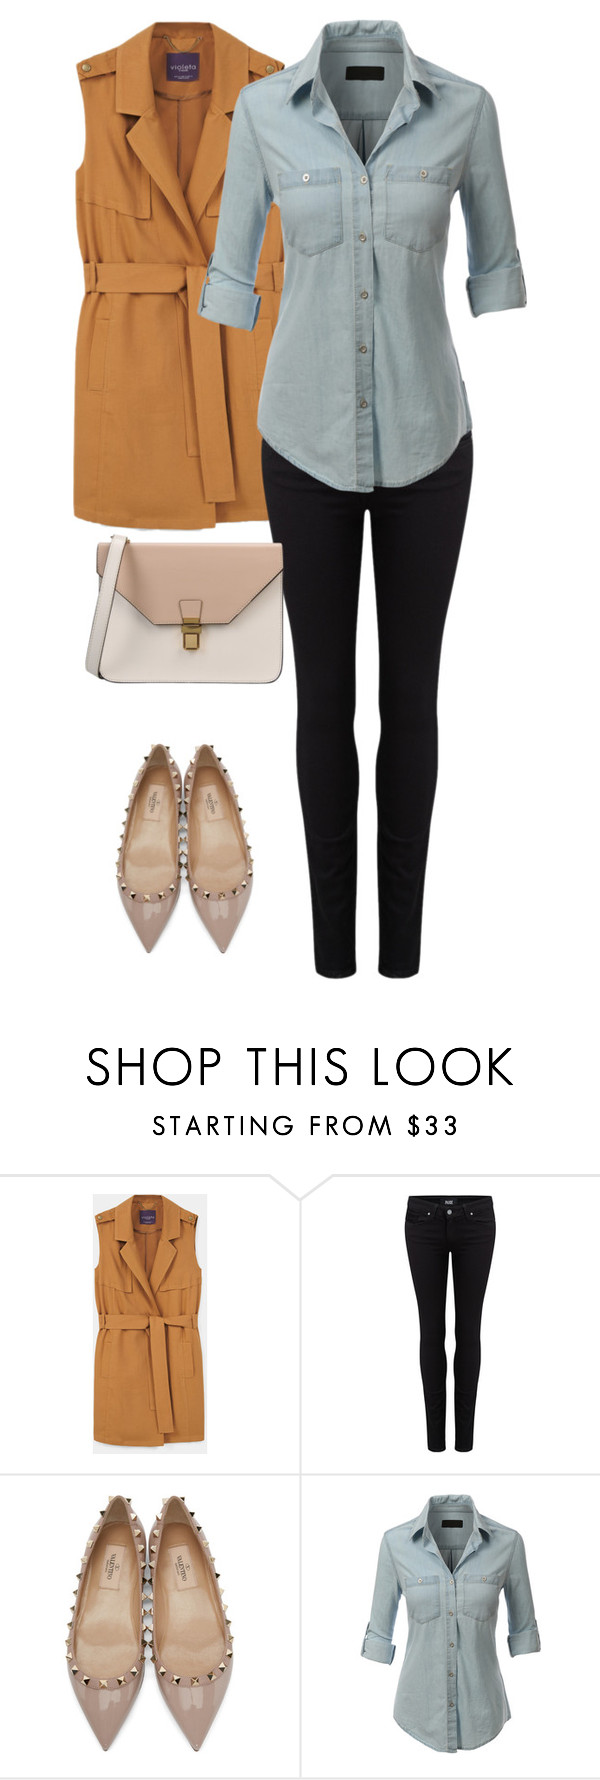 """""""Senza titolo #126"""" by nina-florence ❤ liked on Polyvore featuring MANGO, Paige Denim, Valentino, LE3NO and 8"""